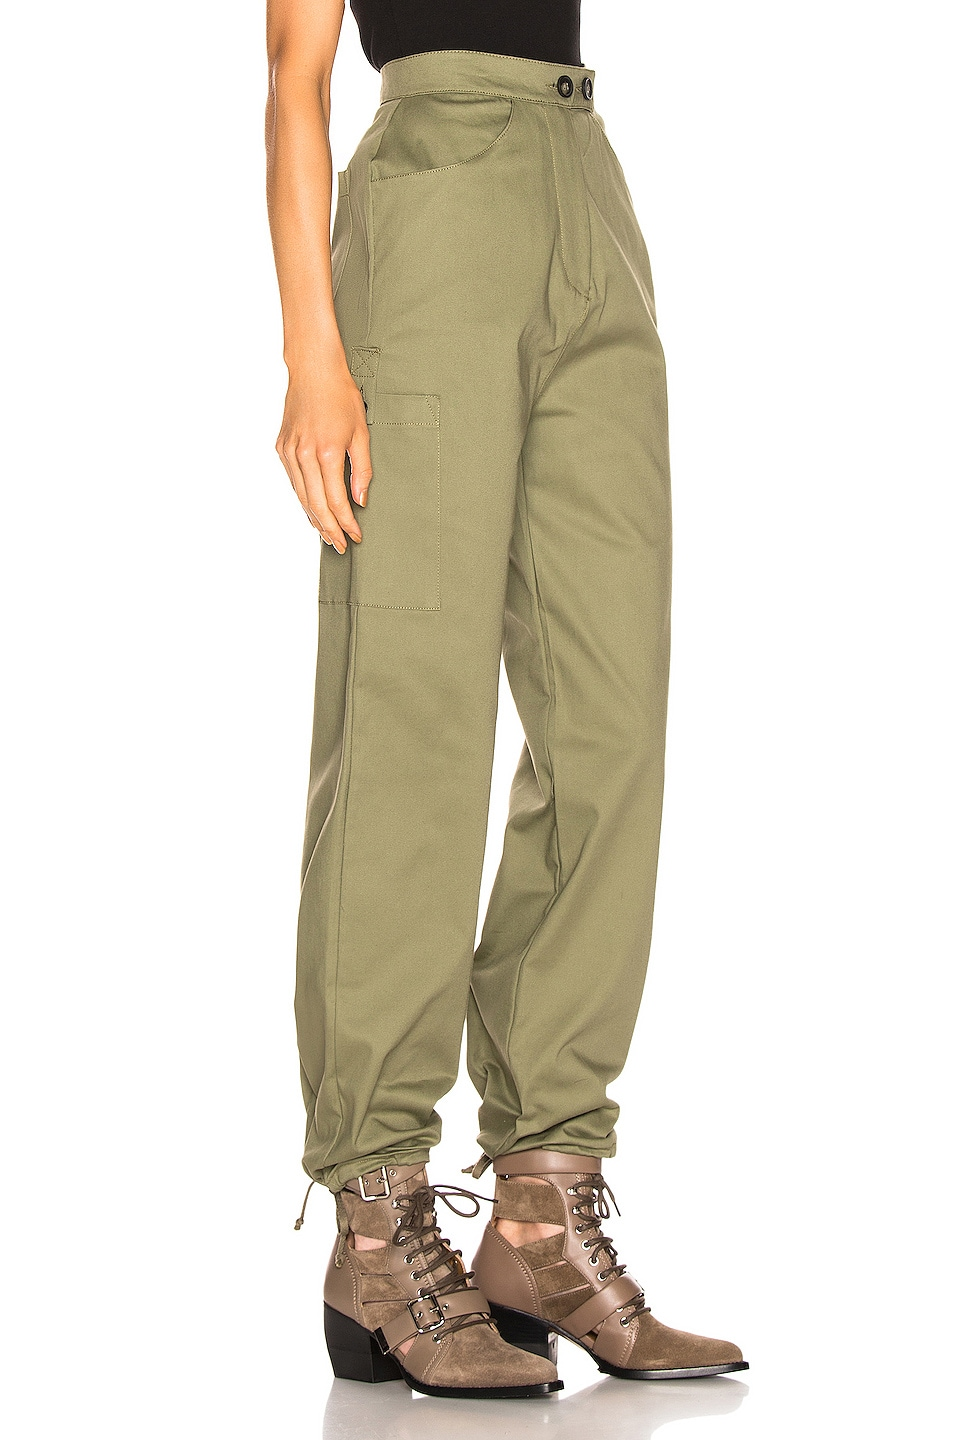 Image 3 of The Range Structured Cargo Pant in Fatigue